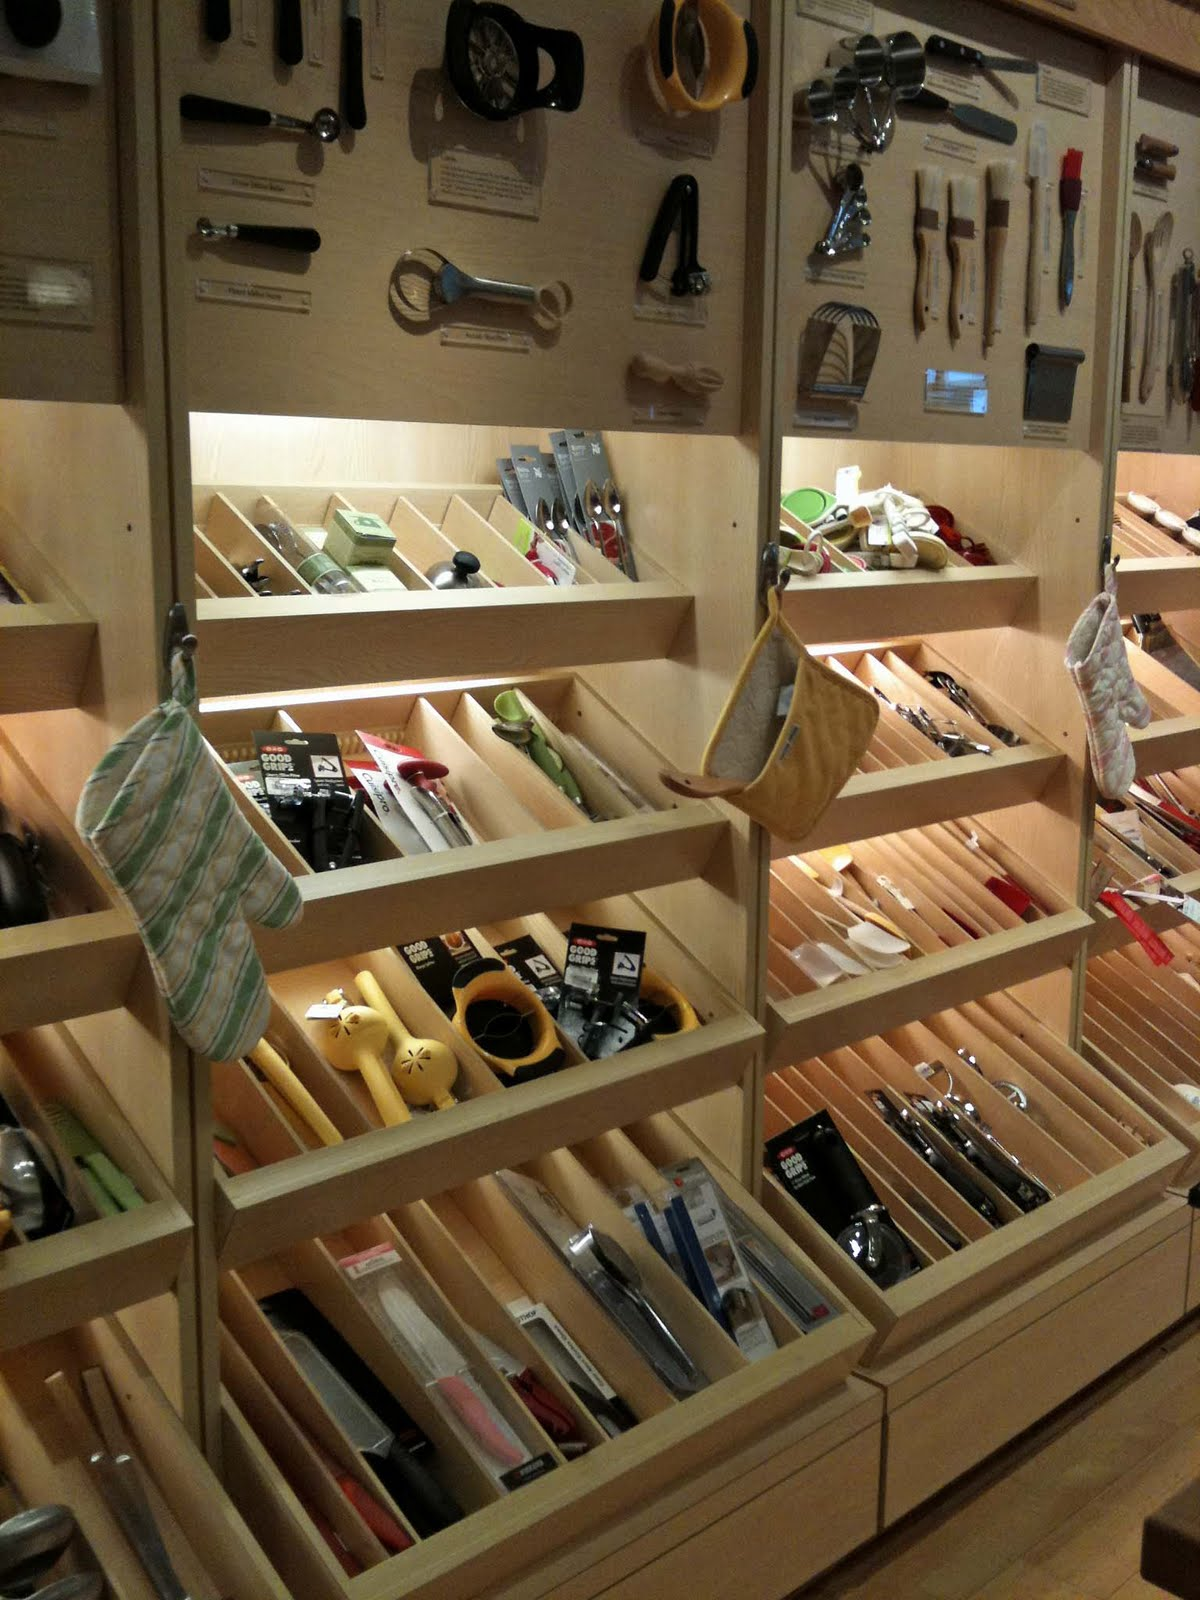 i love kitchen gadgets: my kind of toy store